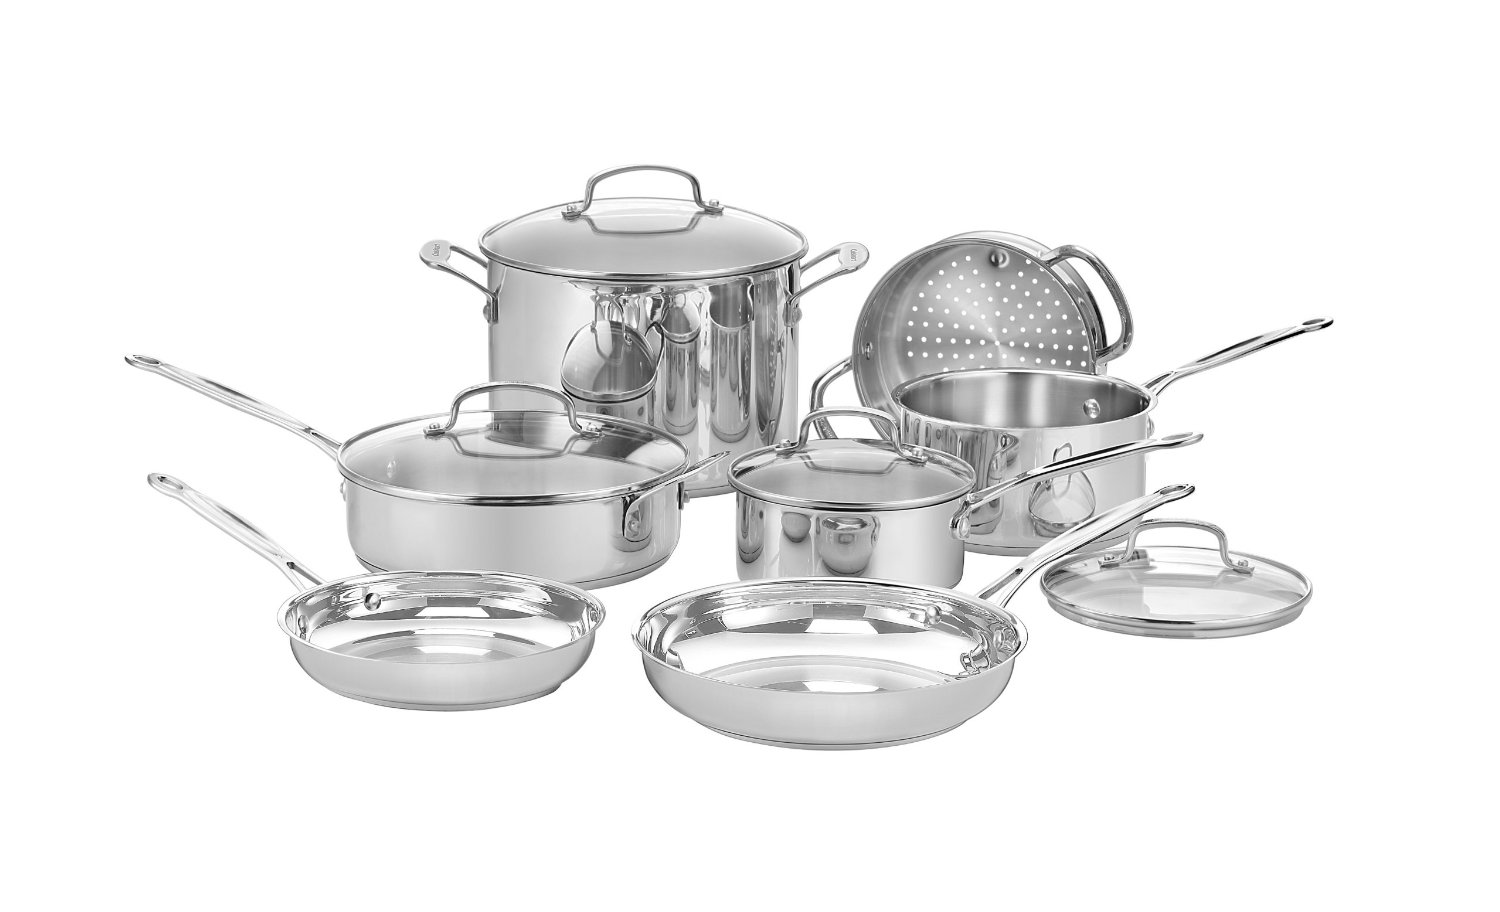 Best Cookware Sets-Cuisinart 77-11G Chef's Classic Stainless 11-Piece